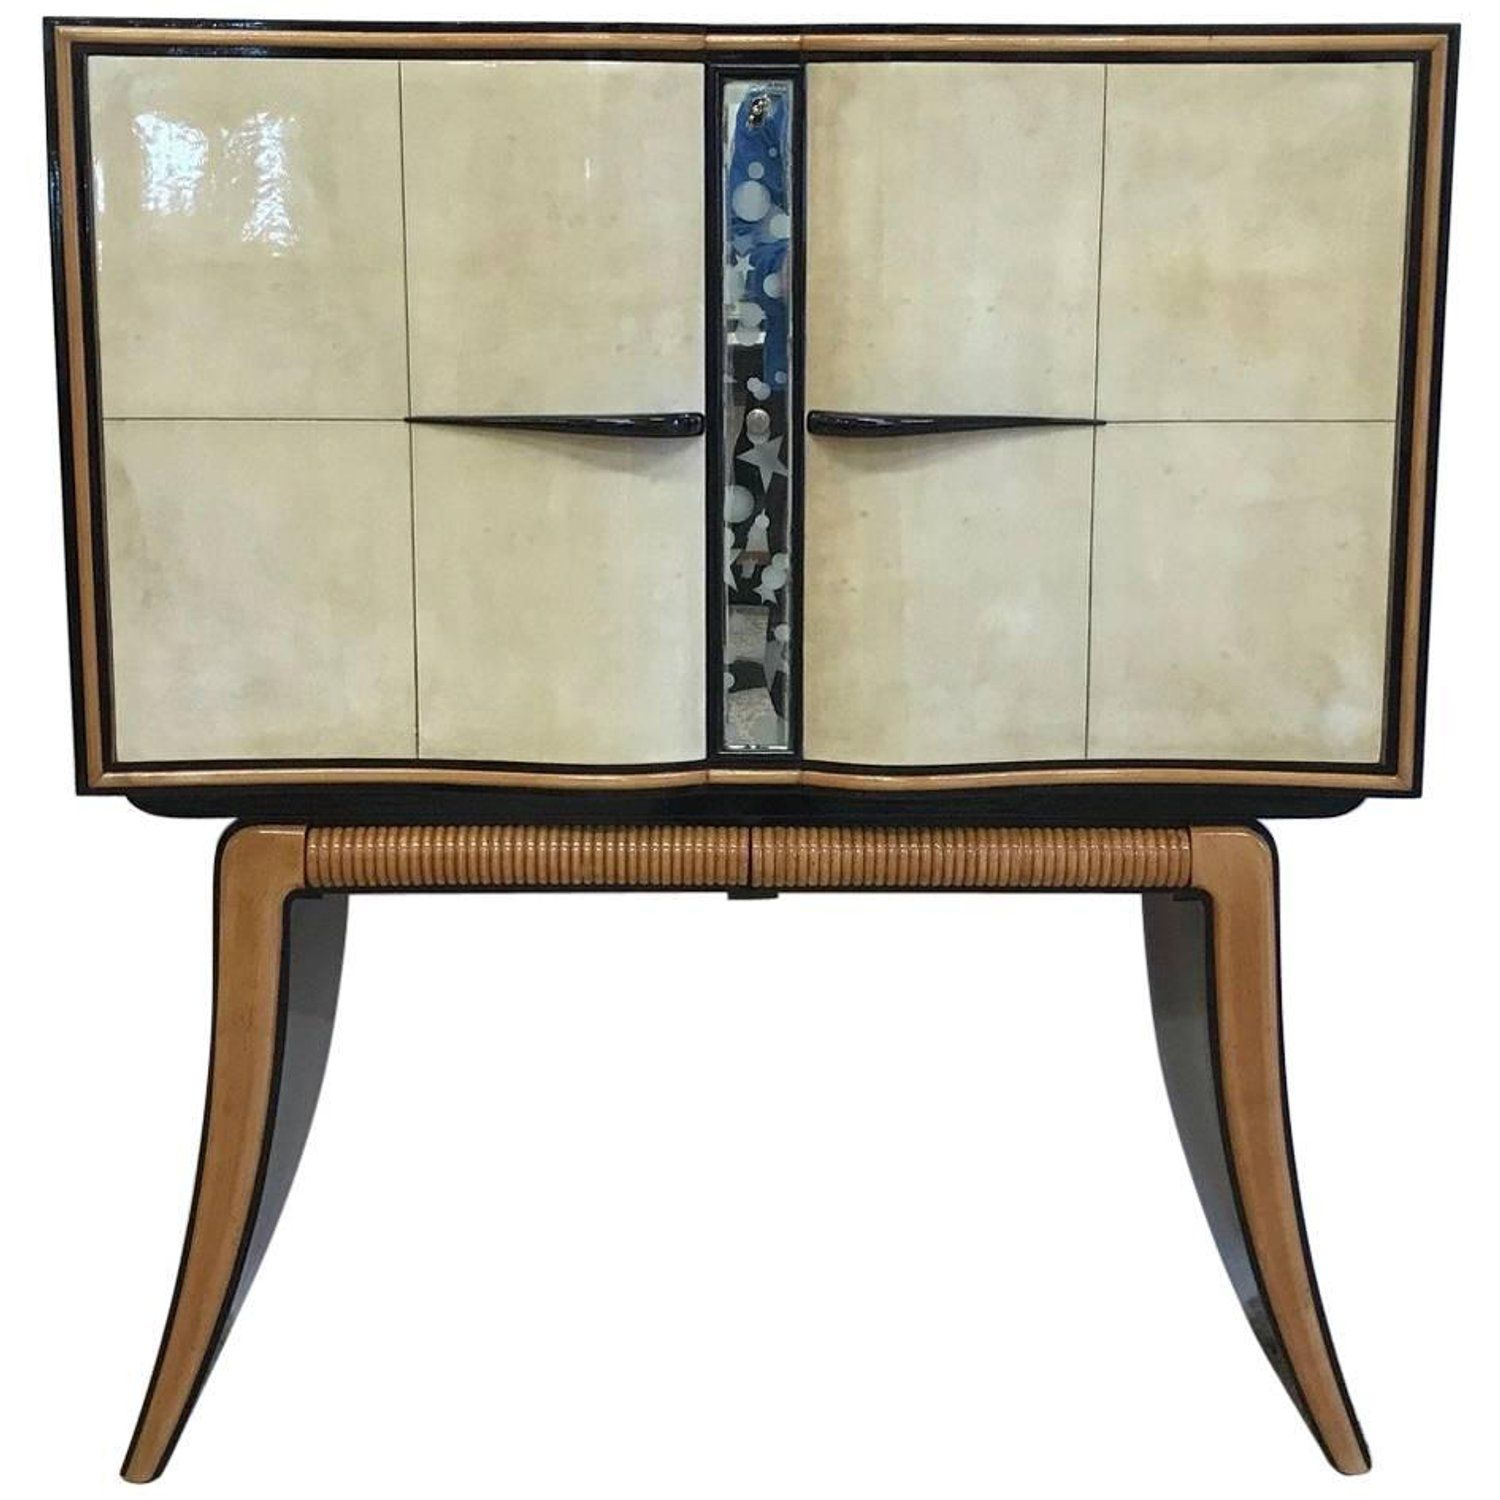 Fine Parchment And Maple Bar Cabinet By Paolo Buffa Italy 1940 Mid Century Bar Cabinet Dry Bars Bar Cabinet